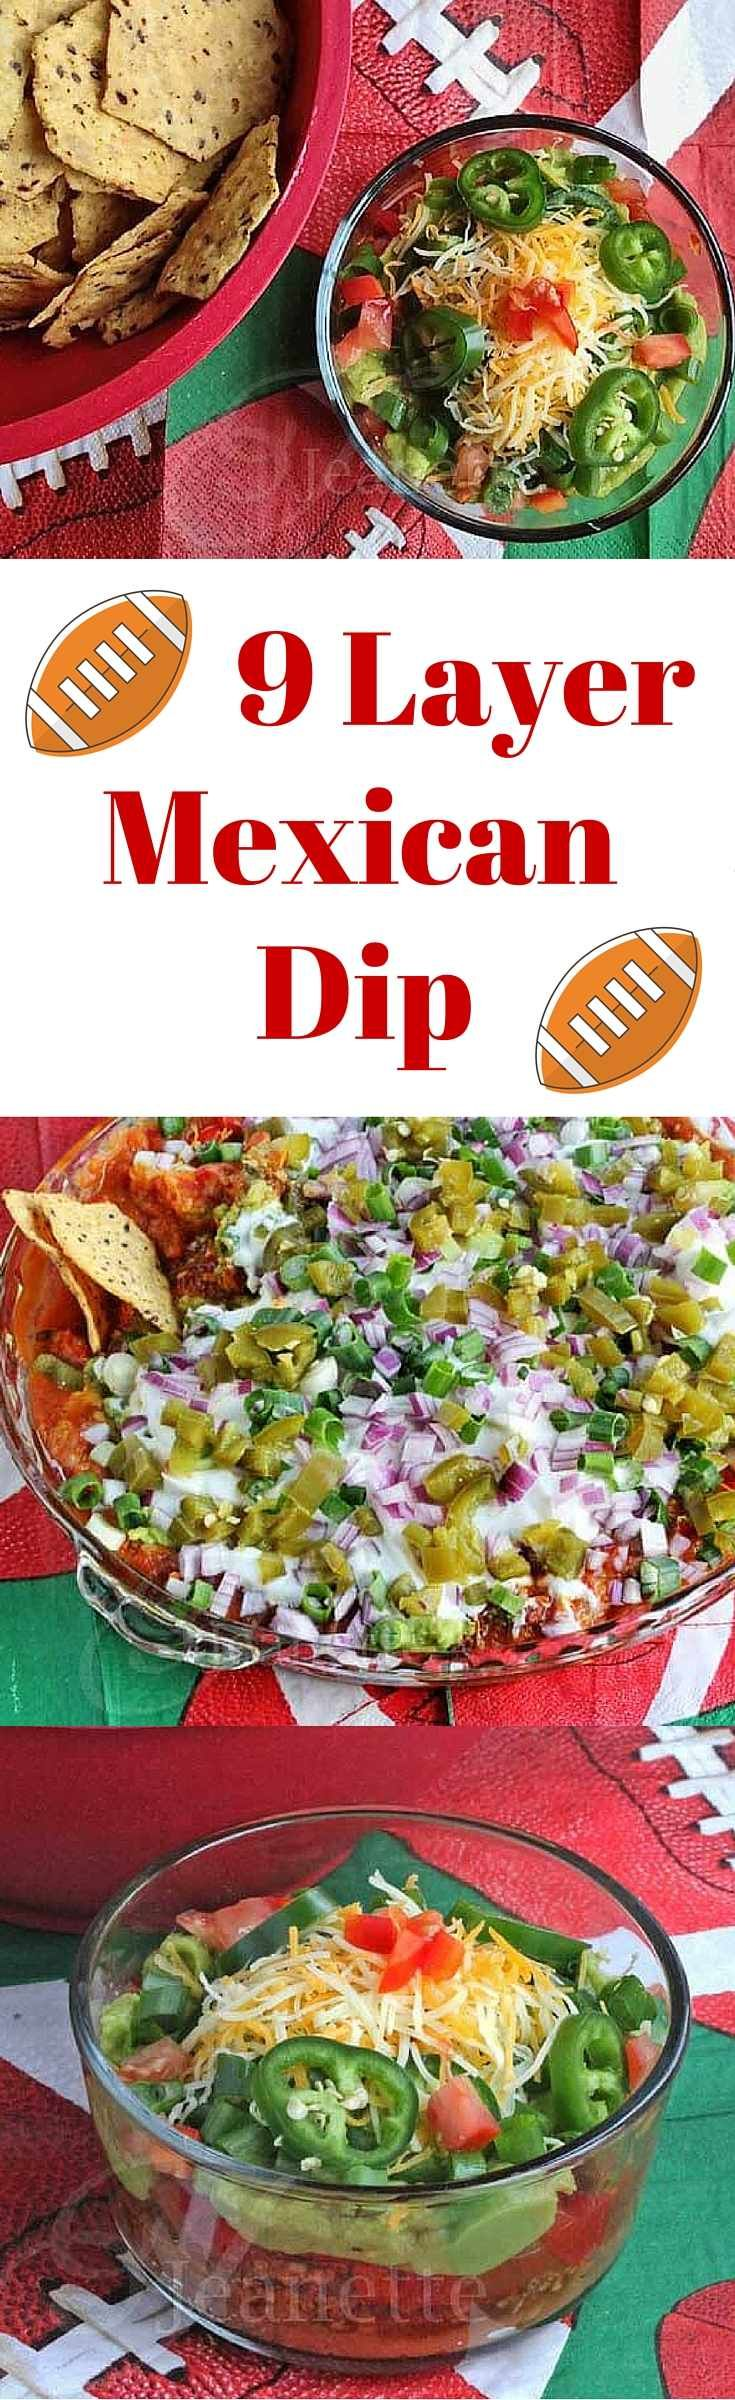 9 Layer Mexican Dip - this is always a crowd favorite - perfect for Game Day! ~ http://jeanetteshealthyliving.com